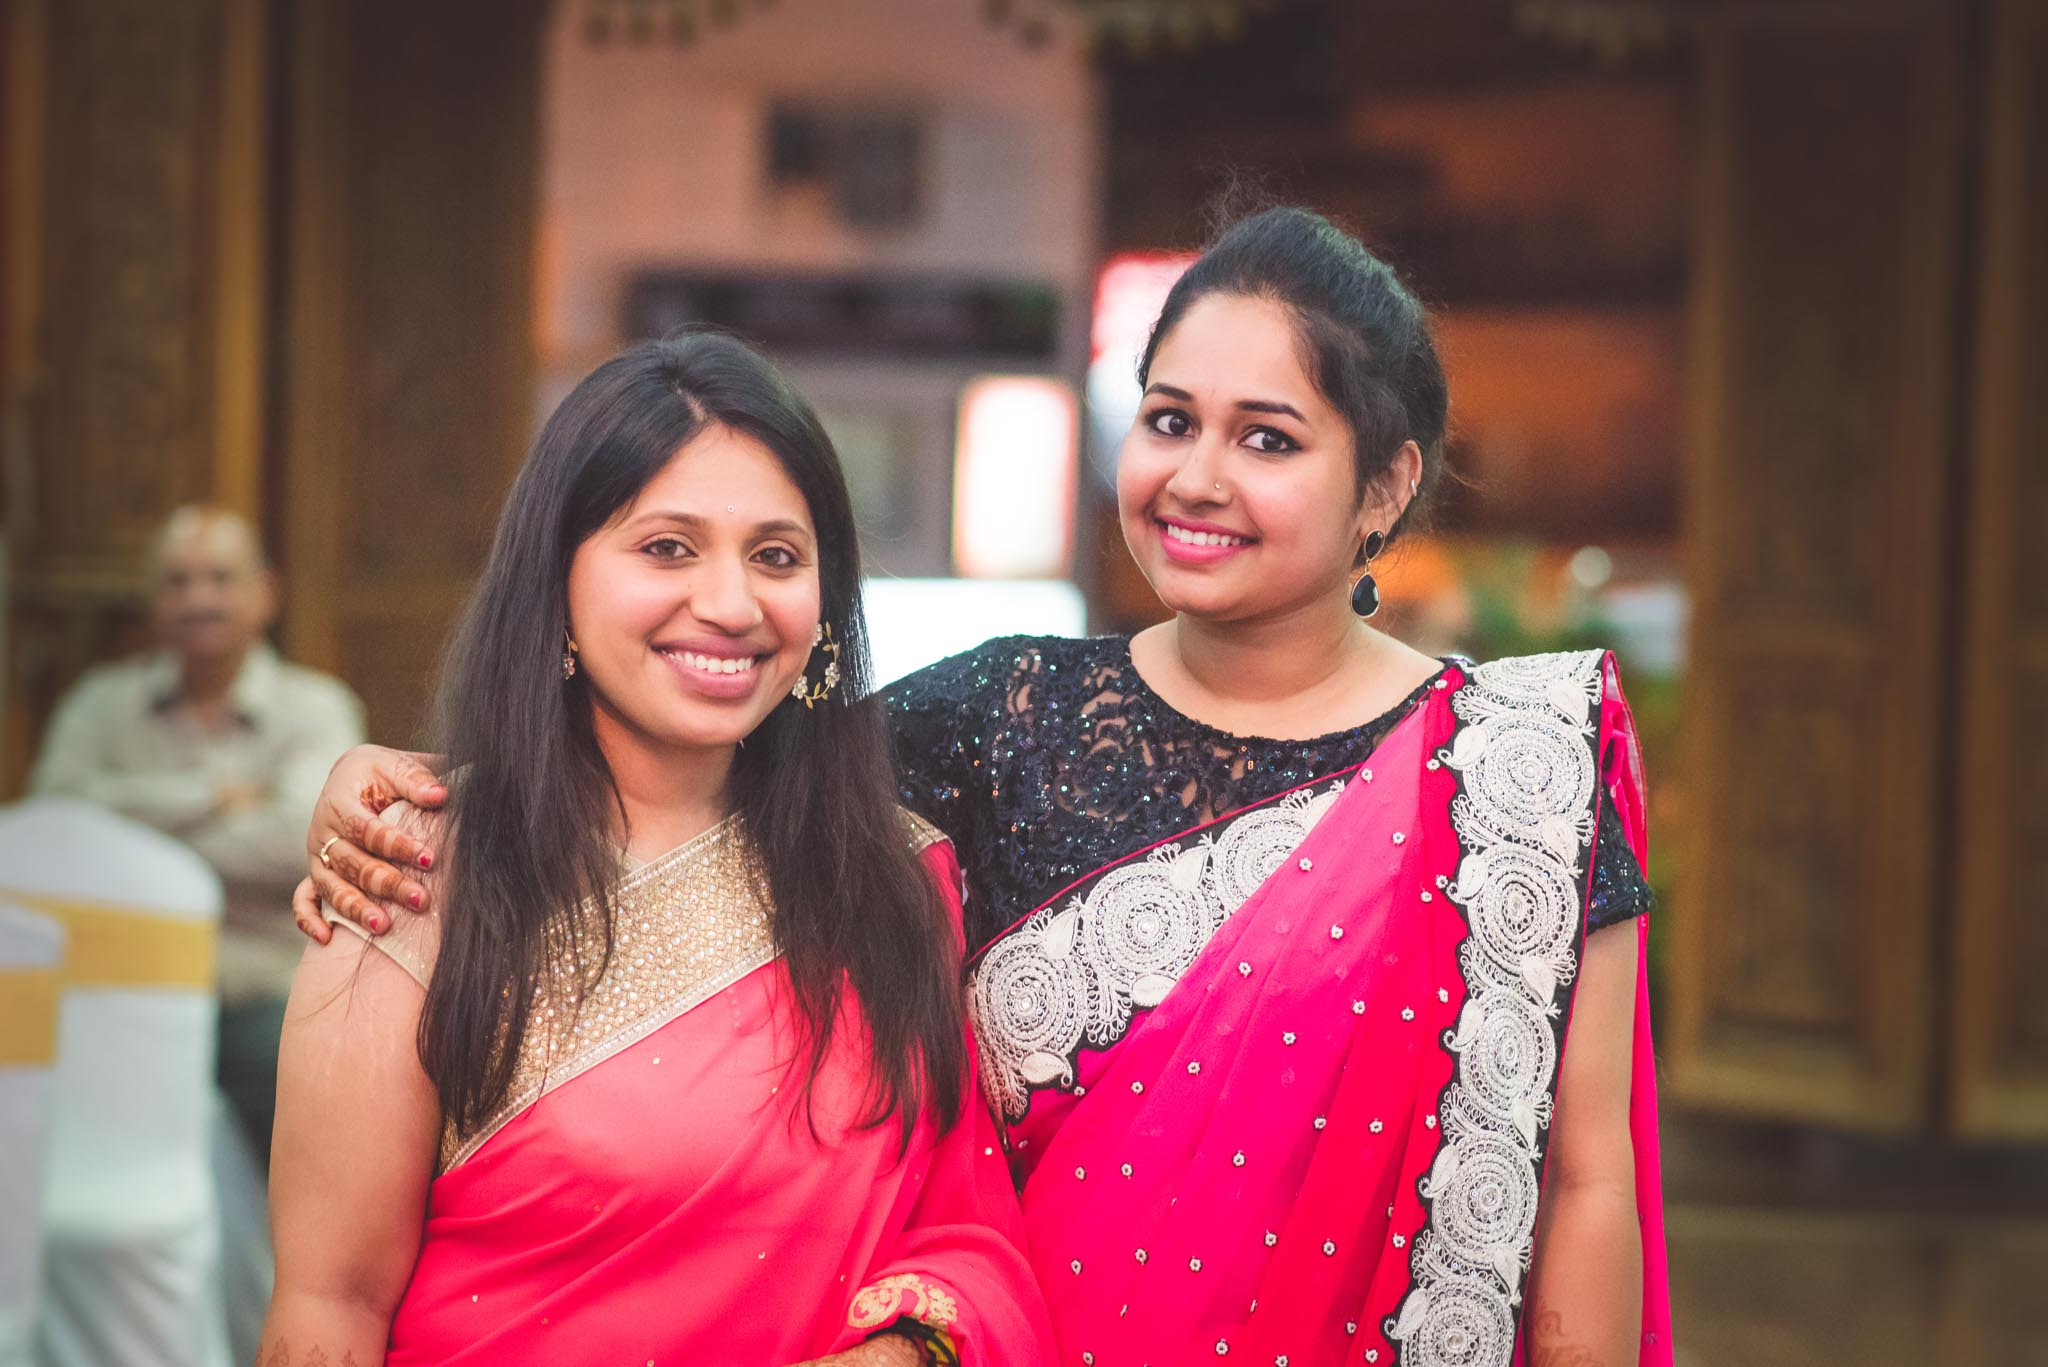 WhatKnot-Candid-Wedding-Photography-Mumbai-Bangalore-231